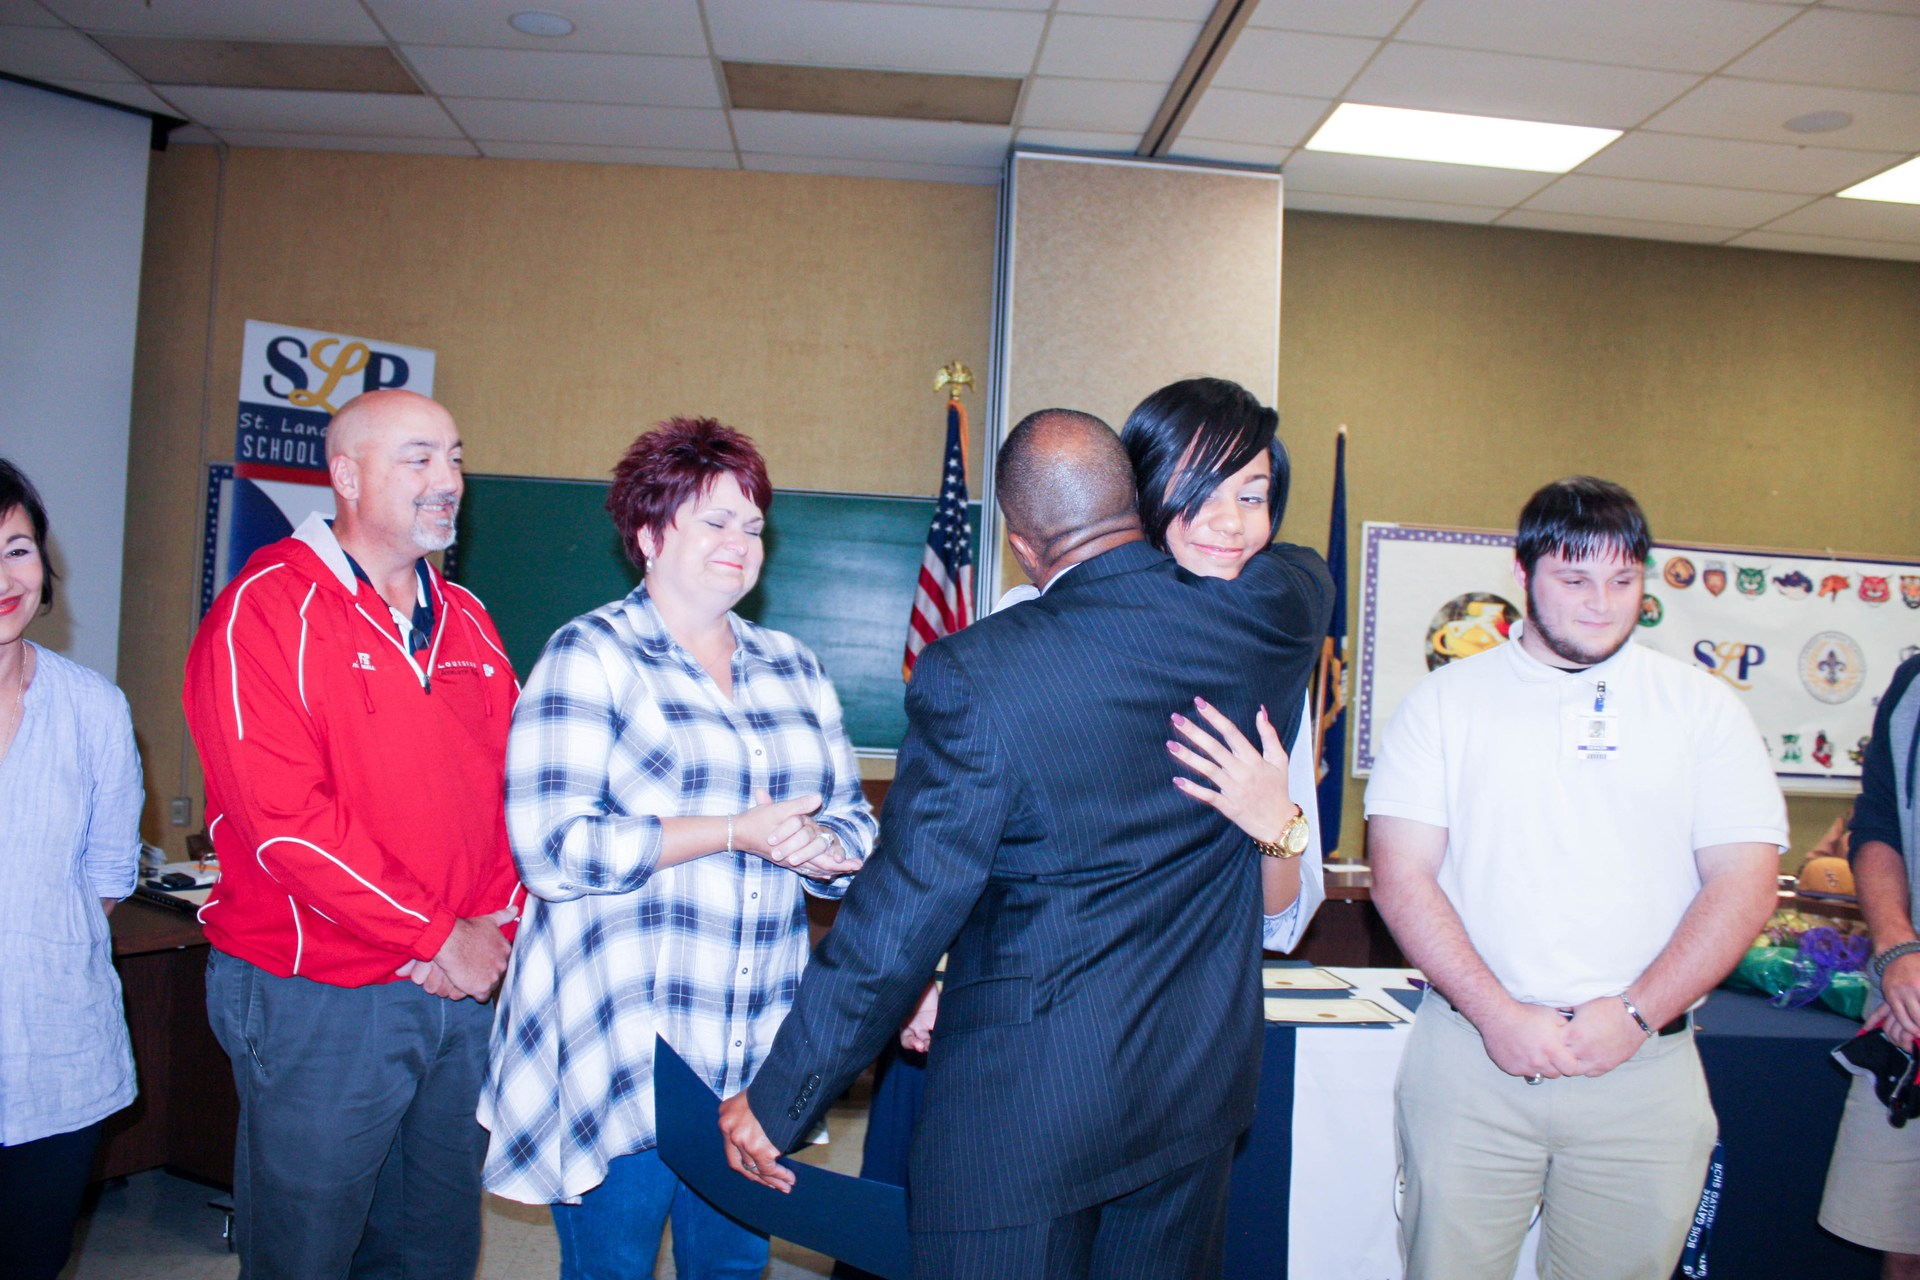 Beau Chene Students whose life was saved.  Honoring local heroes.